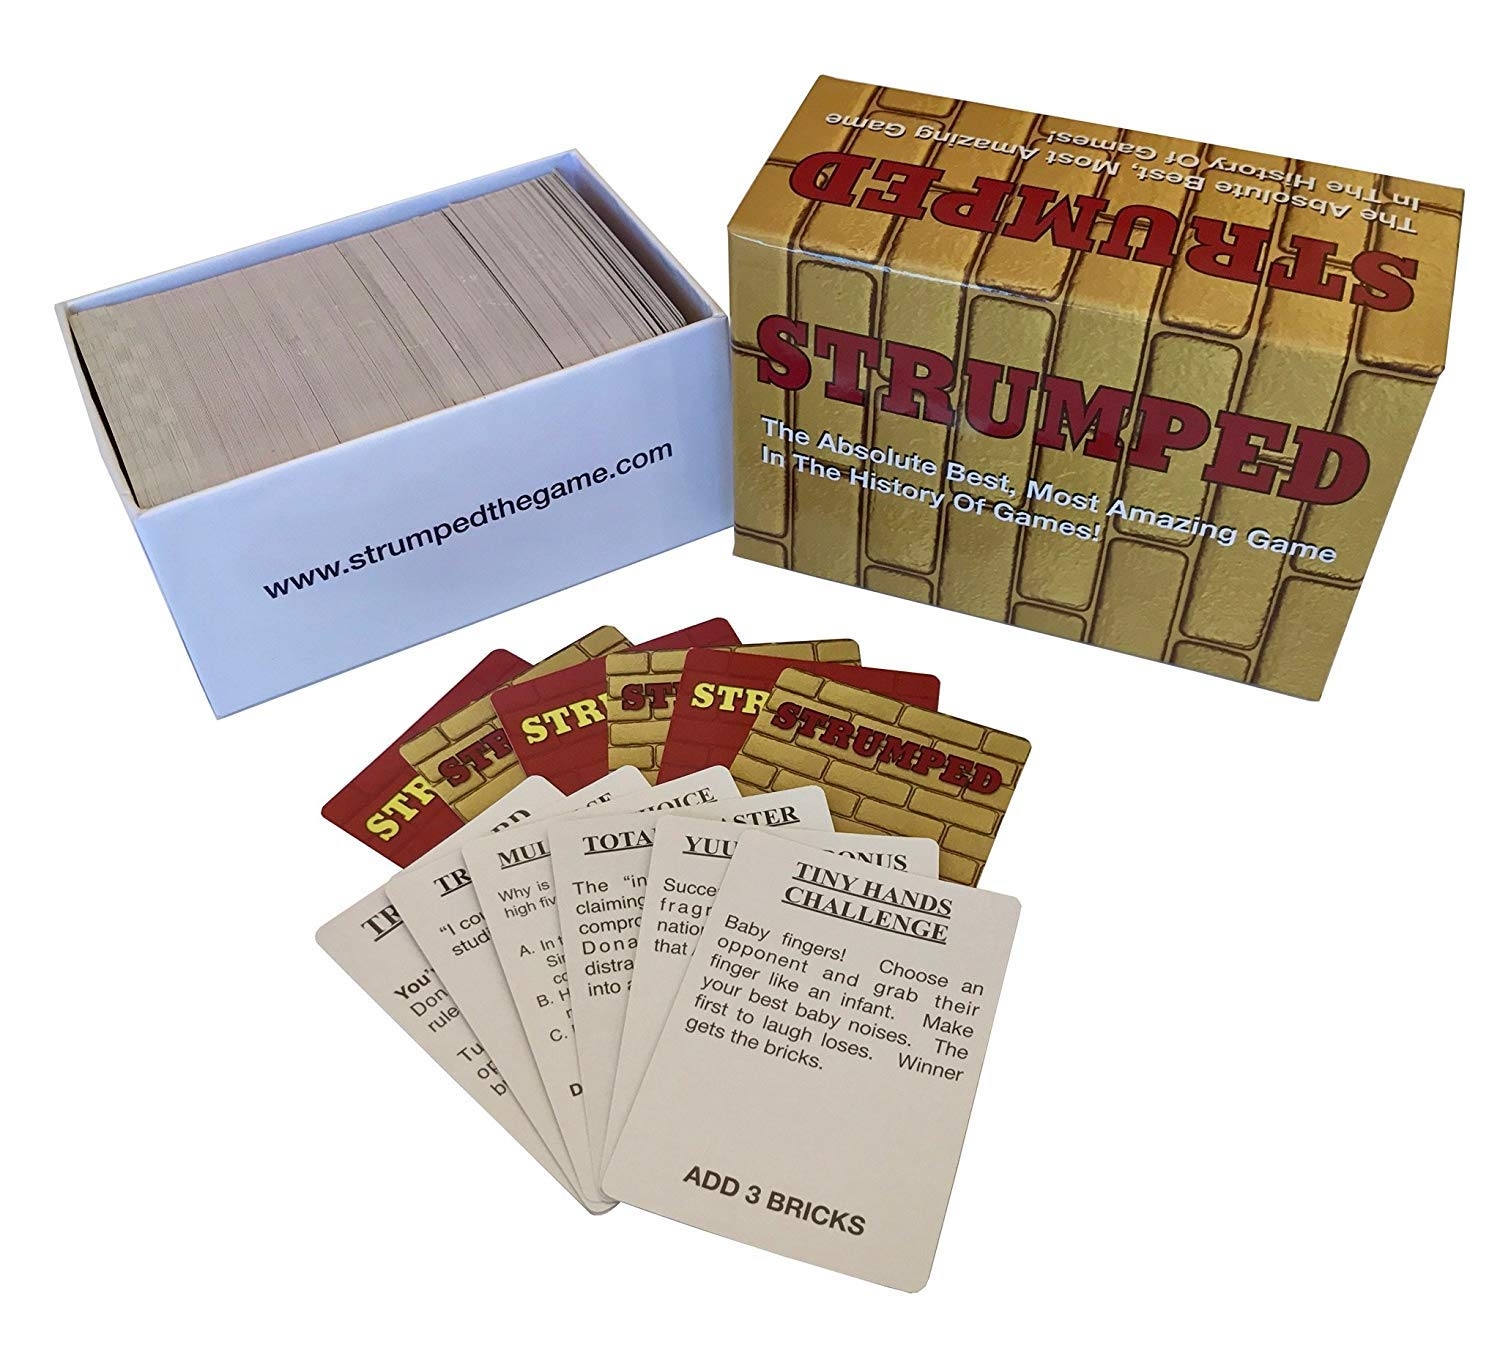 Strumped Hilarious Cards - $19.99